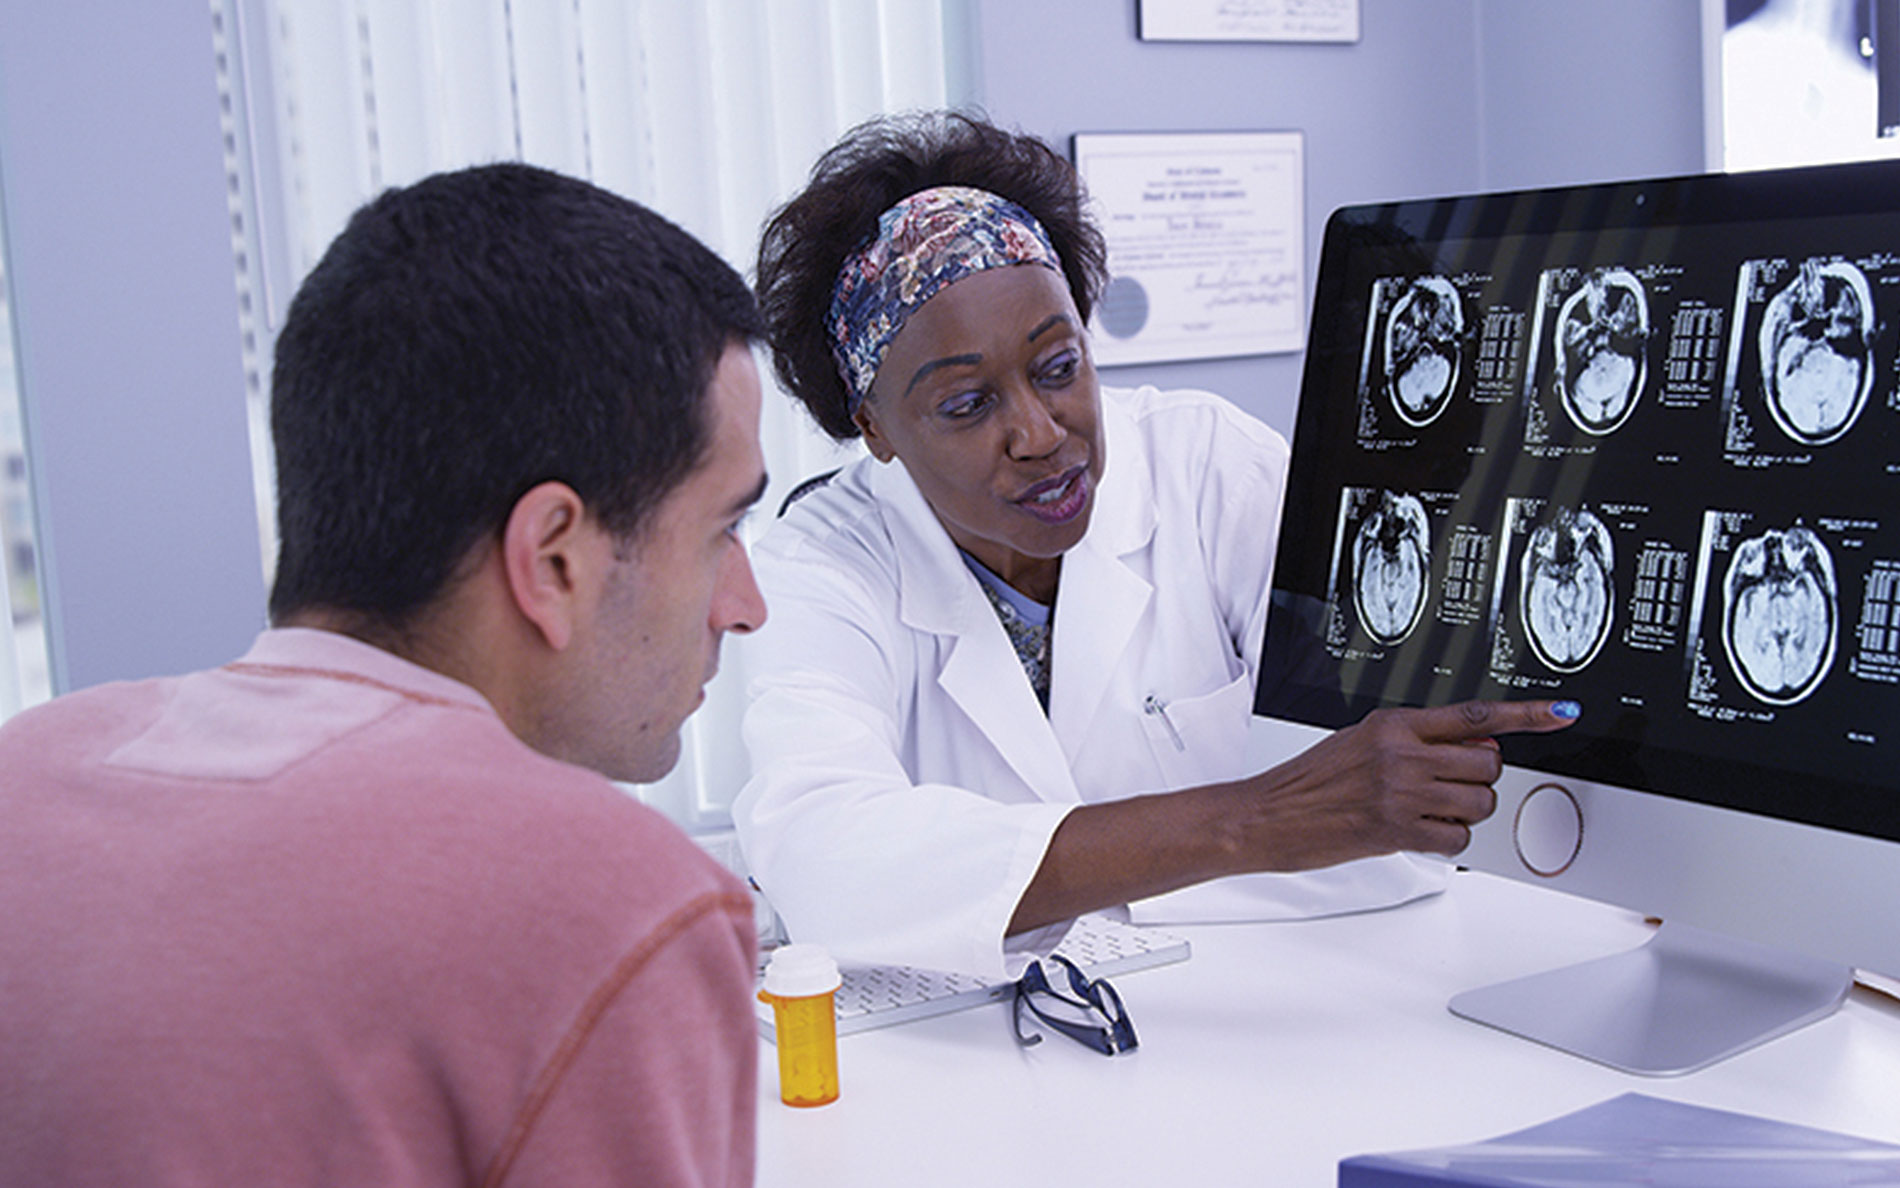 The Path to Patient-Centered Radiology